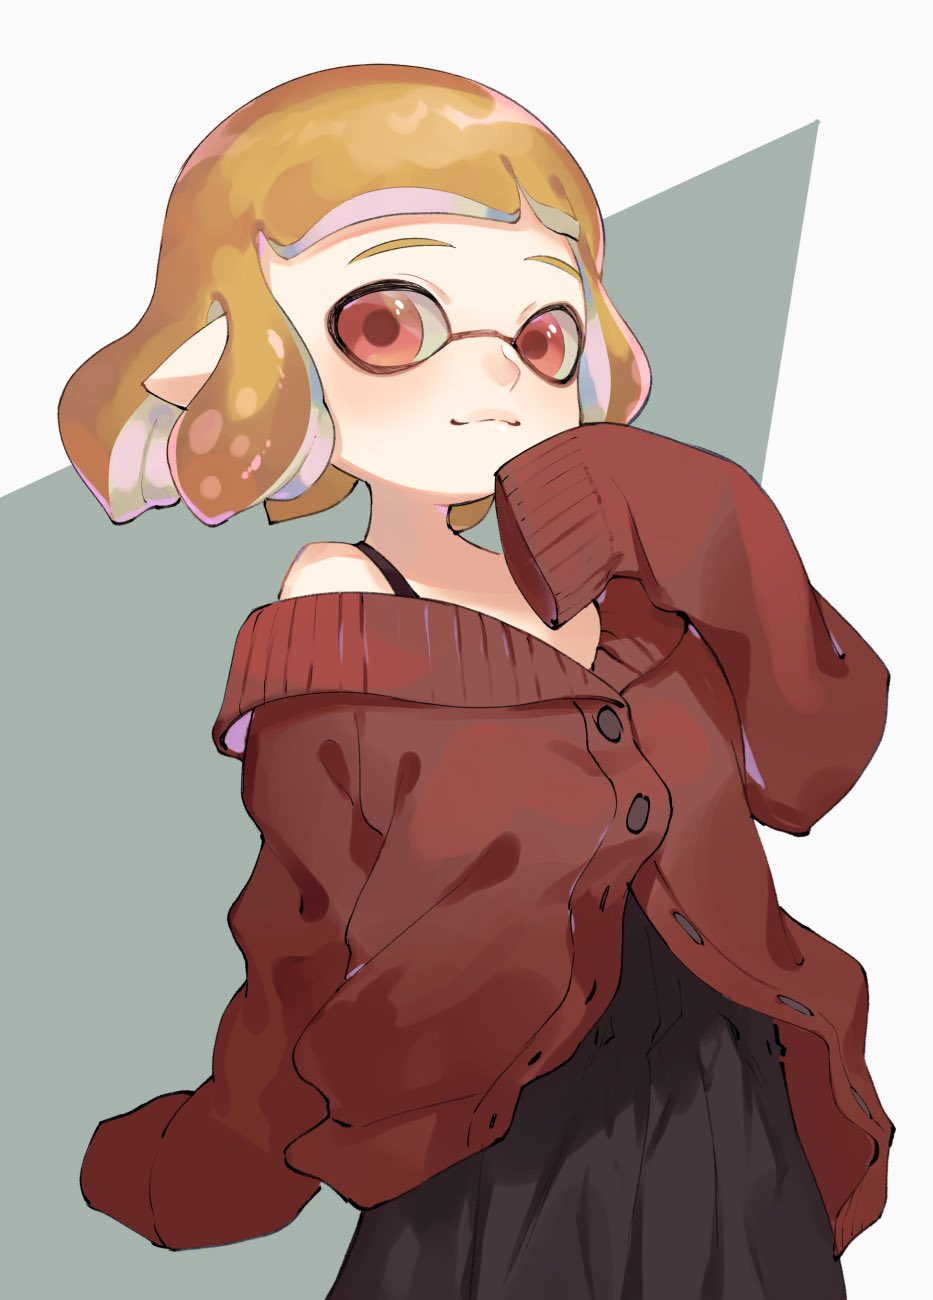 1girl bangs black_dress blunt_bangs buttons dress highres inkling long_sleeves nintendo orange_hair oversized_clothes pointy_ears red_eyes red_shirt shirt short_hair simple_background splatoon_(series) squid tagme tentacle_hair yamagishi_chihiro